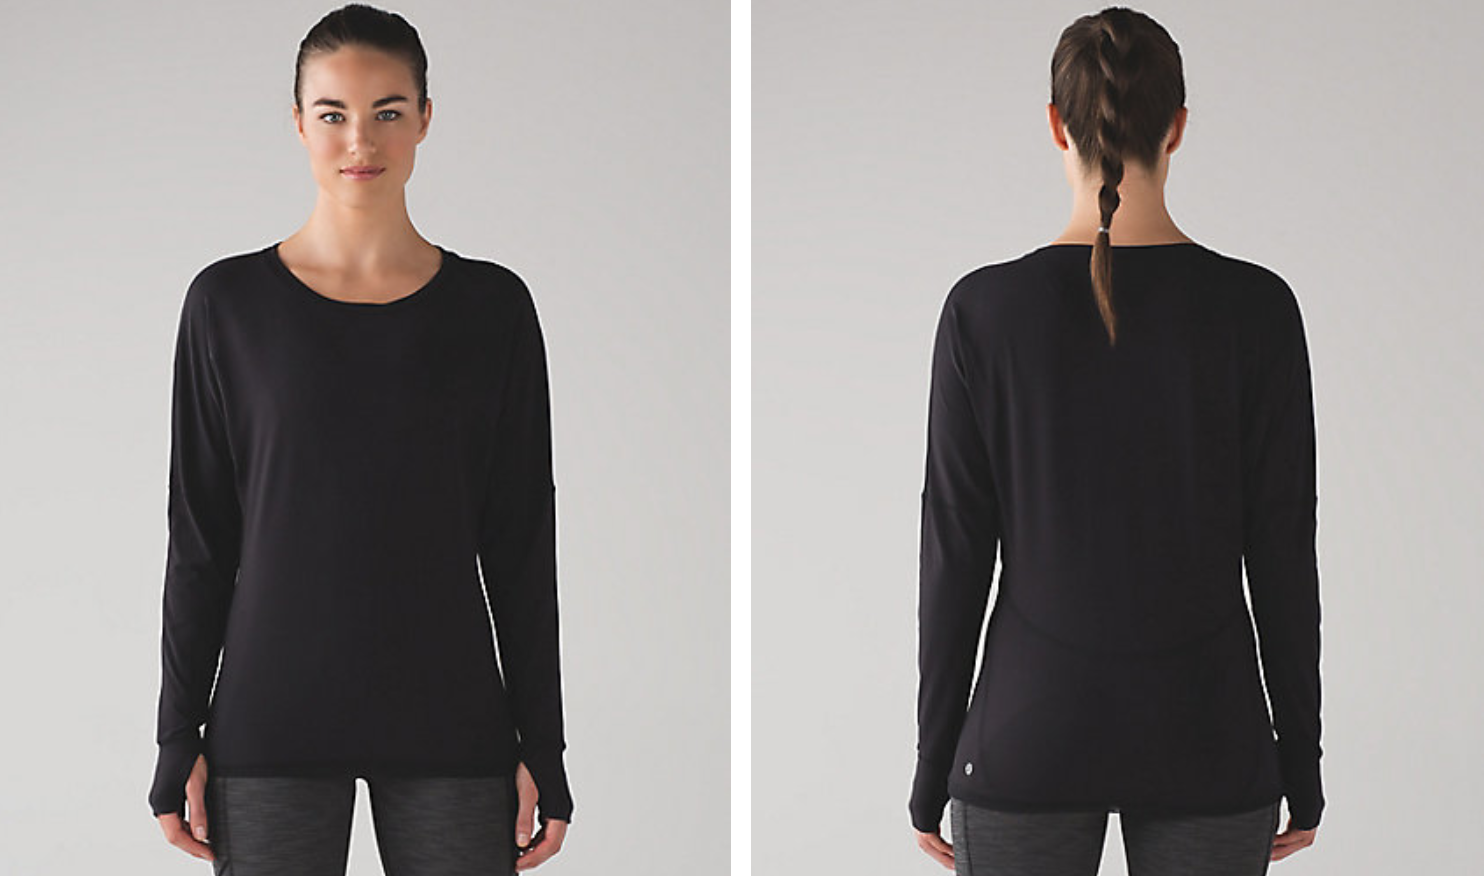 https://api.shopstyle.com/action/apiVisitRetailer?url=https%3A%2F%2Fshop.lululemon.com%2Fp%2Ftops-long-sleeve%2FGear-Up-LS%2F_%2Fprod8351356%3Frcnt%3D0%26N%3D1z13ziiZ7z5%26cnt%3D34%26color%3DLW3AI6S_0002&site=www.shopstyle.ca&pid=uid6784-25288972-7